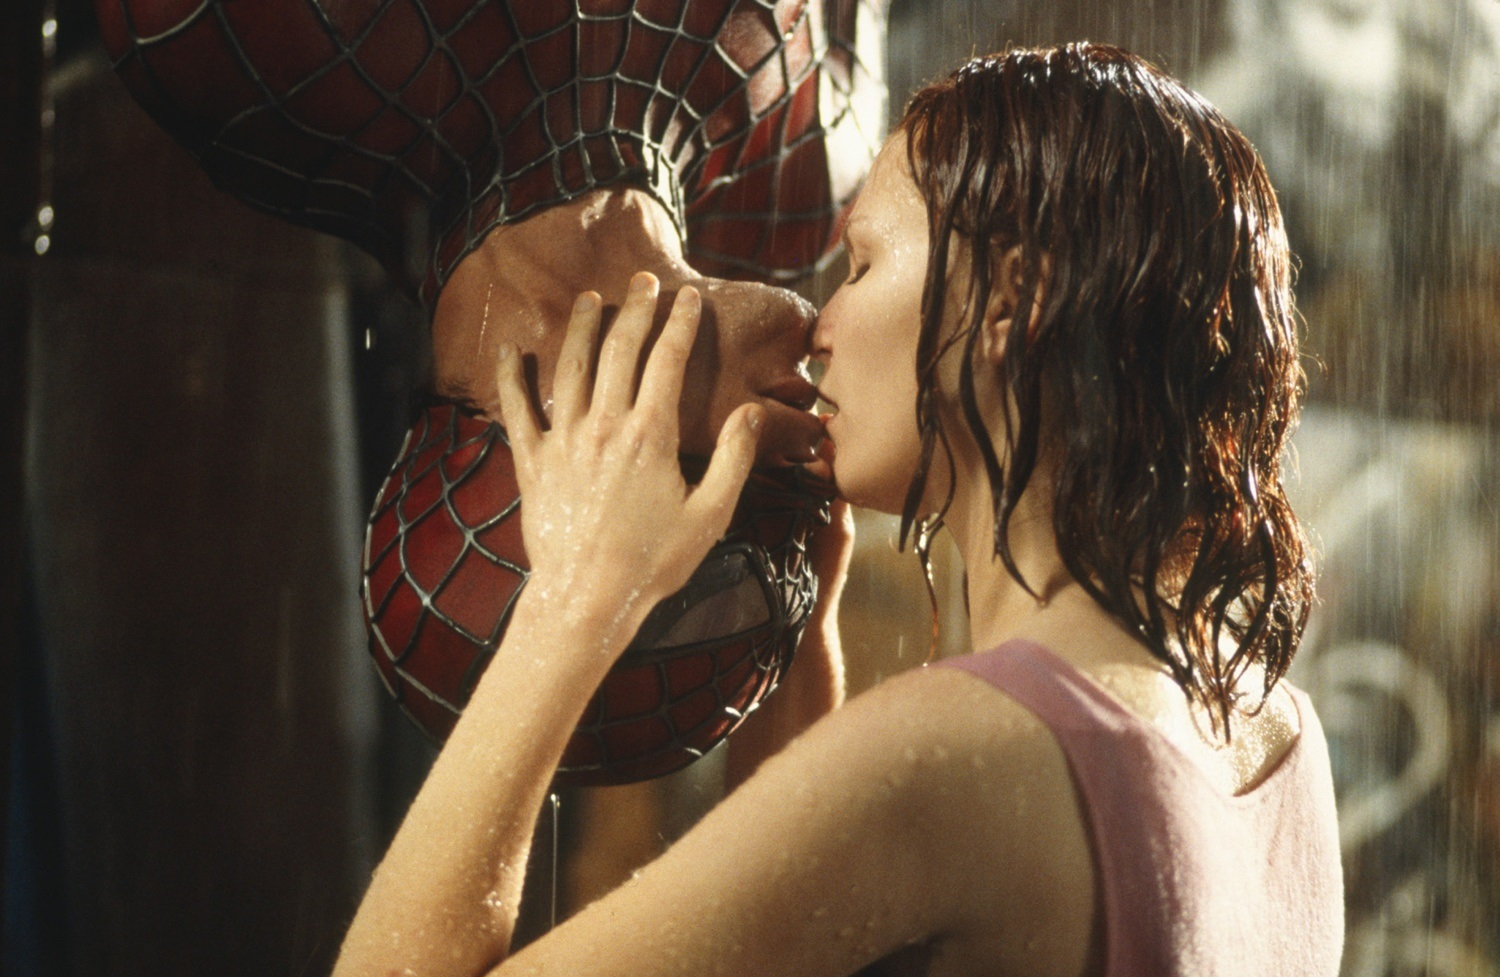 The upside-down kiss - Tobey Maguire and Kirsten Dunst in Spider-Man (2002)